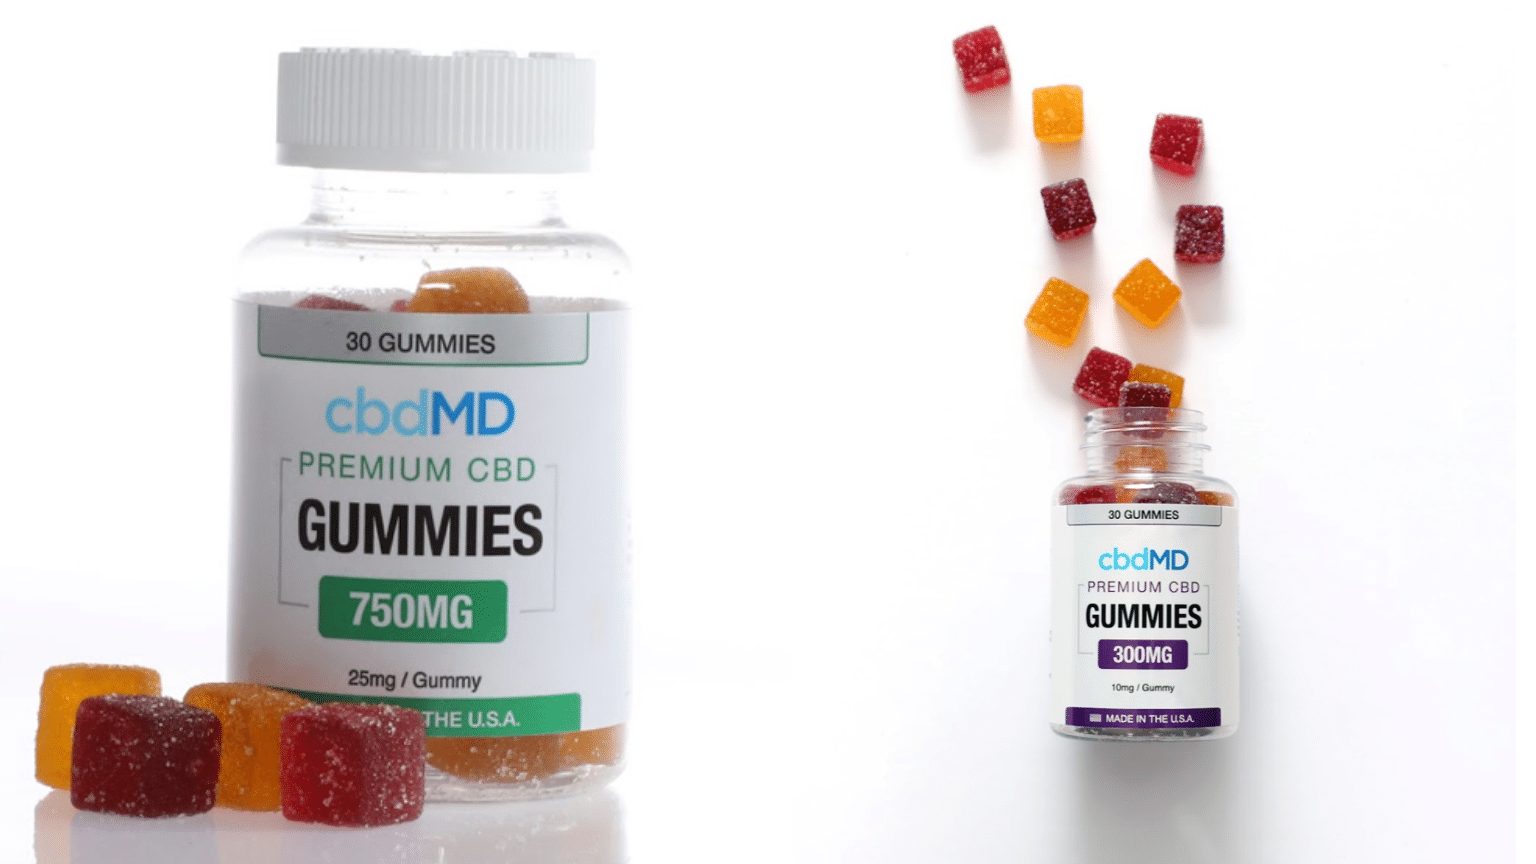 cbdmd-gummies-bottle-examples